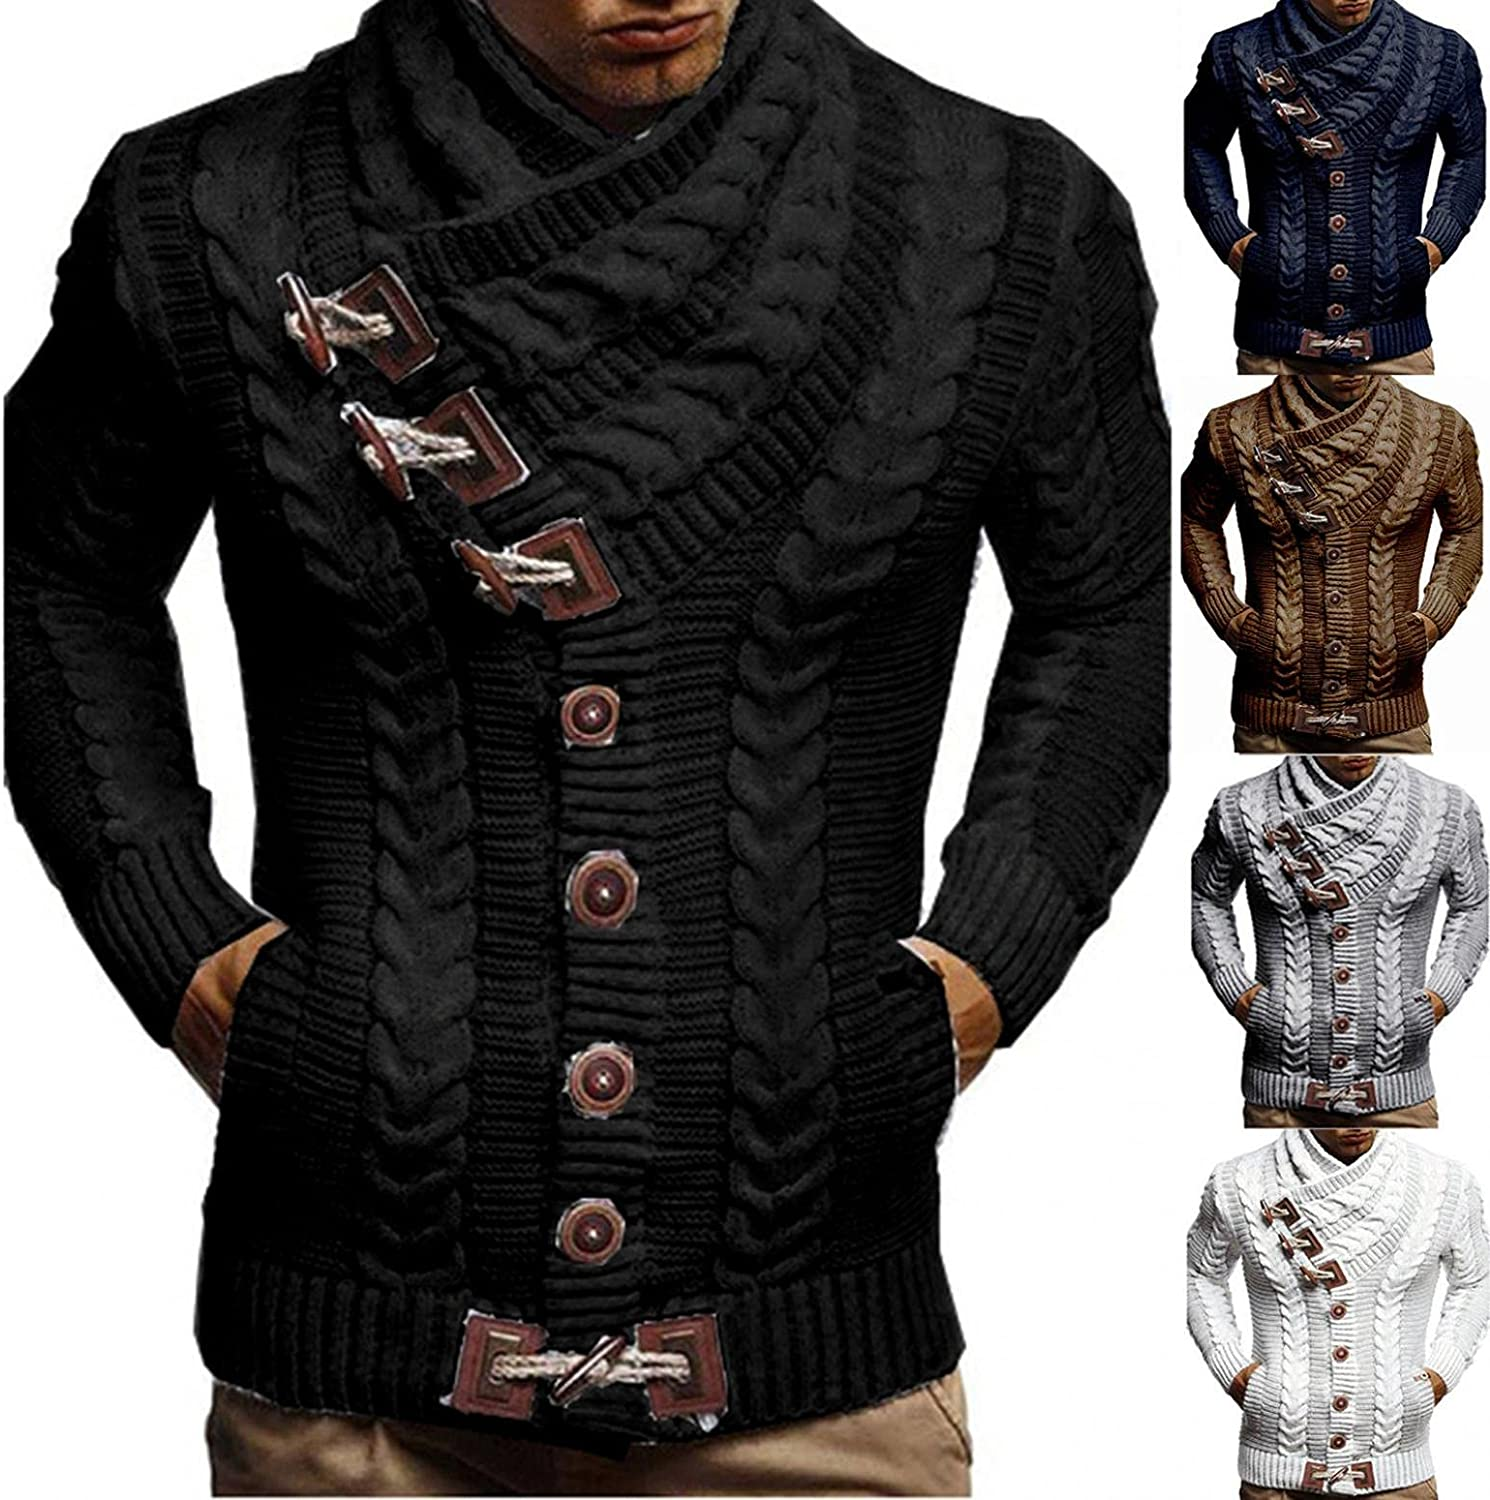 Men's Turtleneck Pullover Sweaters Cable Knitted Button Down Sweatshirts Coat Novelty Scarf Neck Thermal Top Blouse